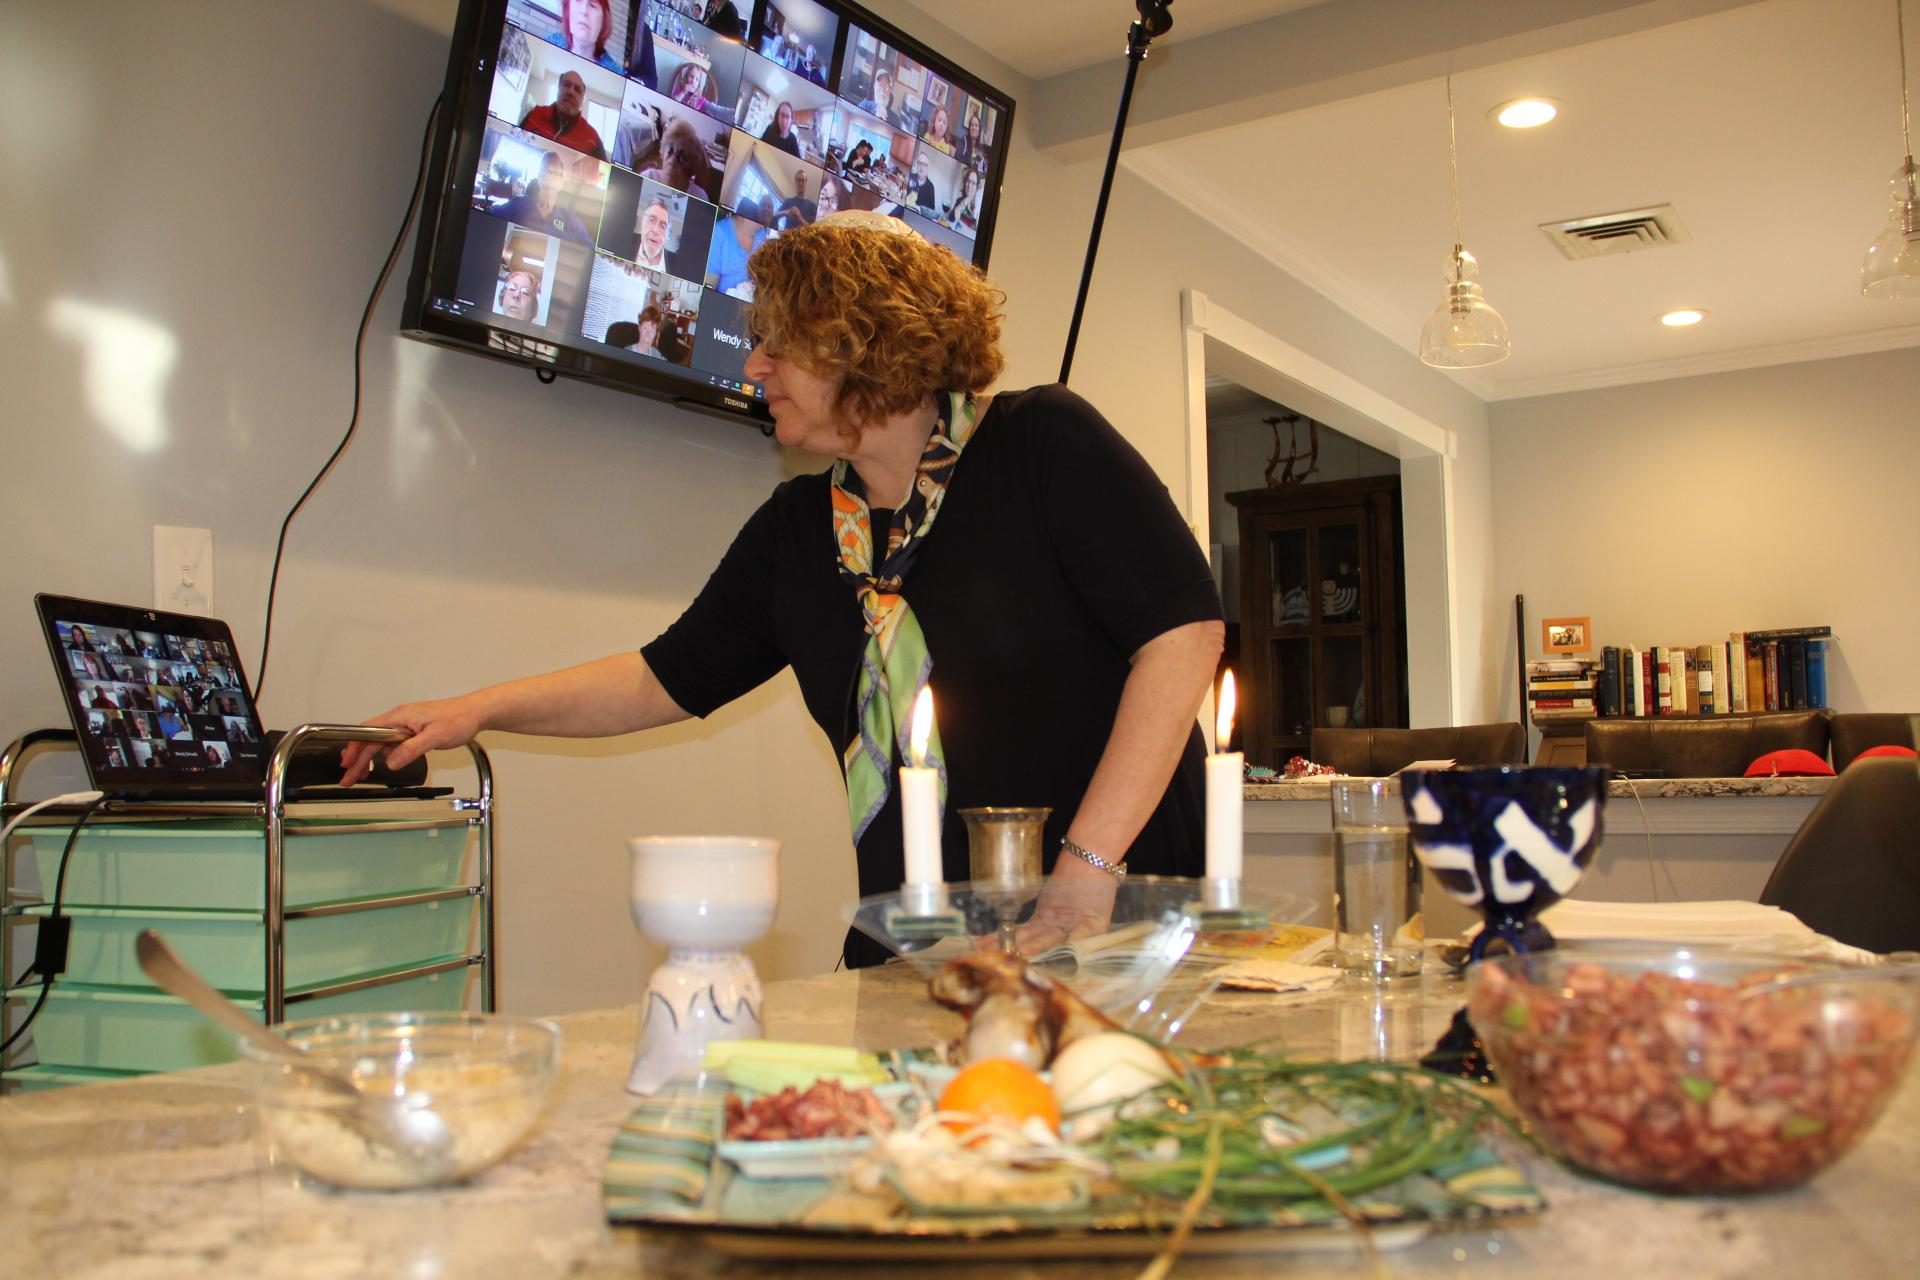 With in-person religious services canceled, places of worship turned to Zoom calls and Facebook live broadcasts to connect with the faithful. Here Rabbi Rebecca Shinder, of Temple Beth Shalom in the Village of Florida, joins congregation members in Orange County on Zoom to share the rituals of the Seder meal.